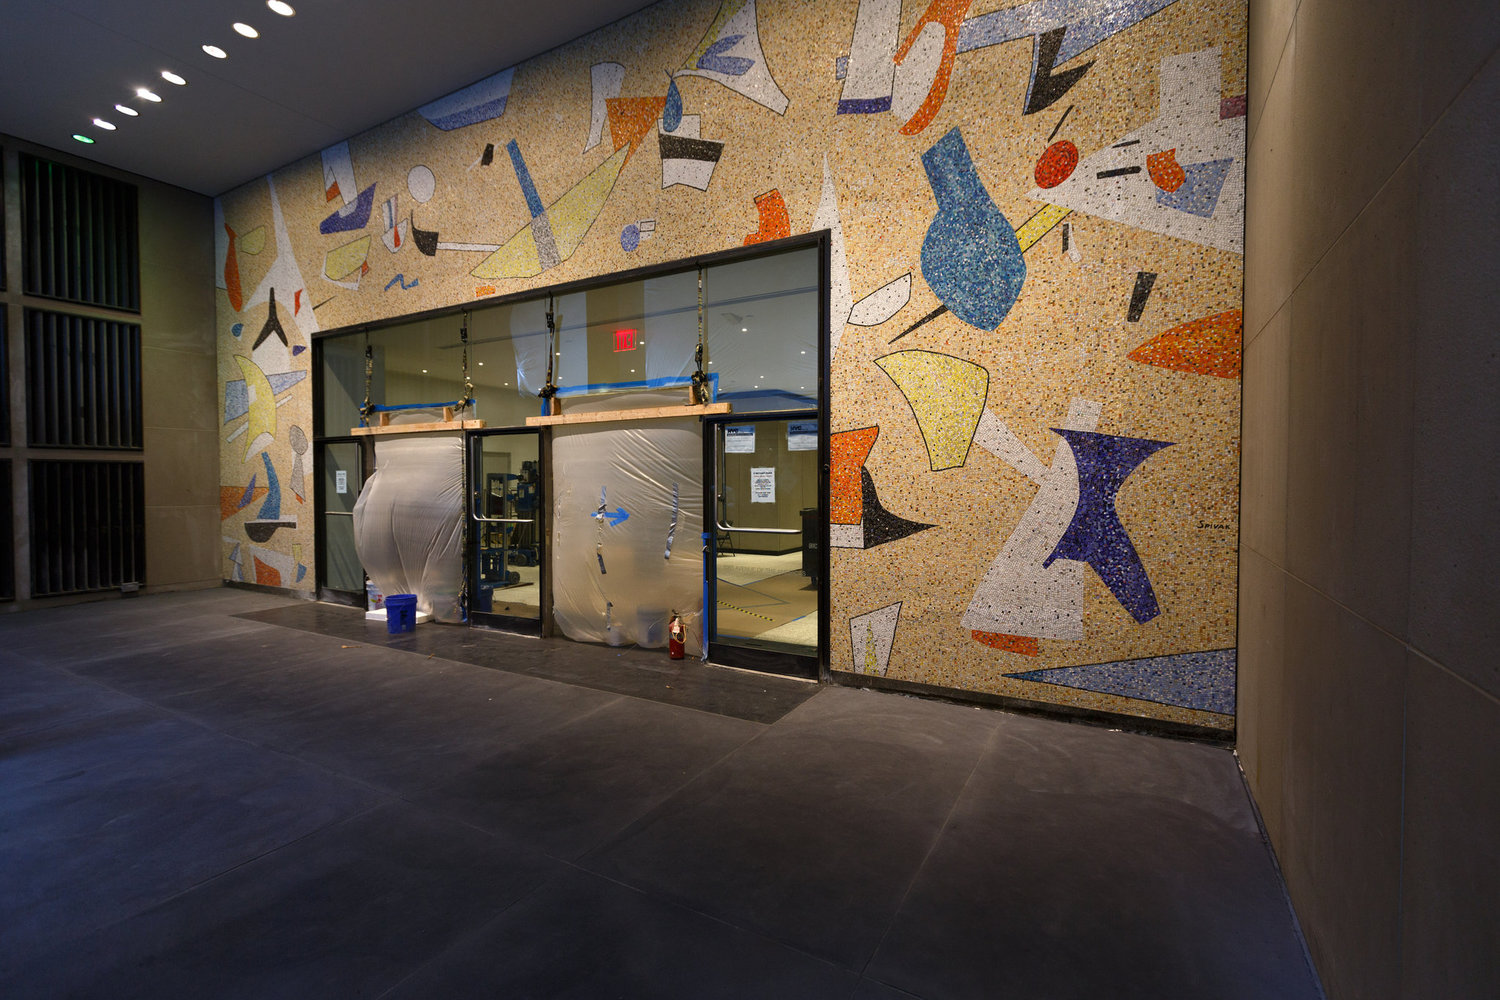 Construction workers discovered a mosaic mural by Max Spivak in the entryway to 5 Bryant Park in March. It will be preserved as part of the new lobby.